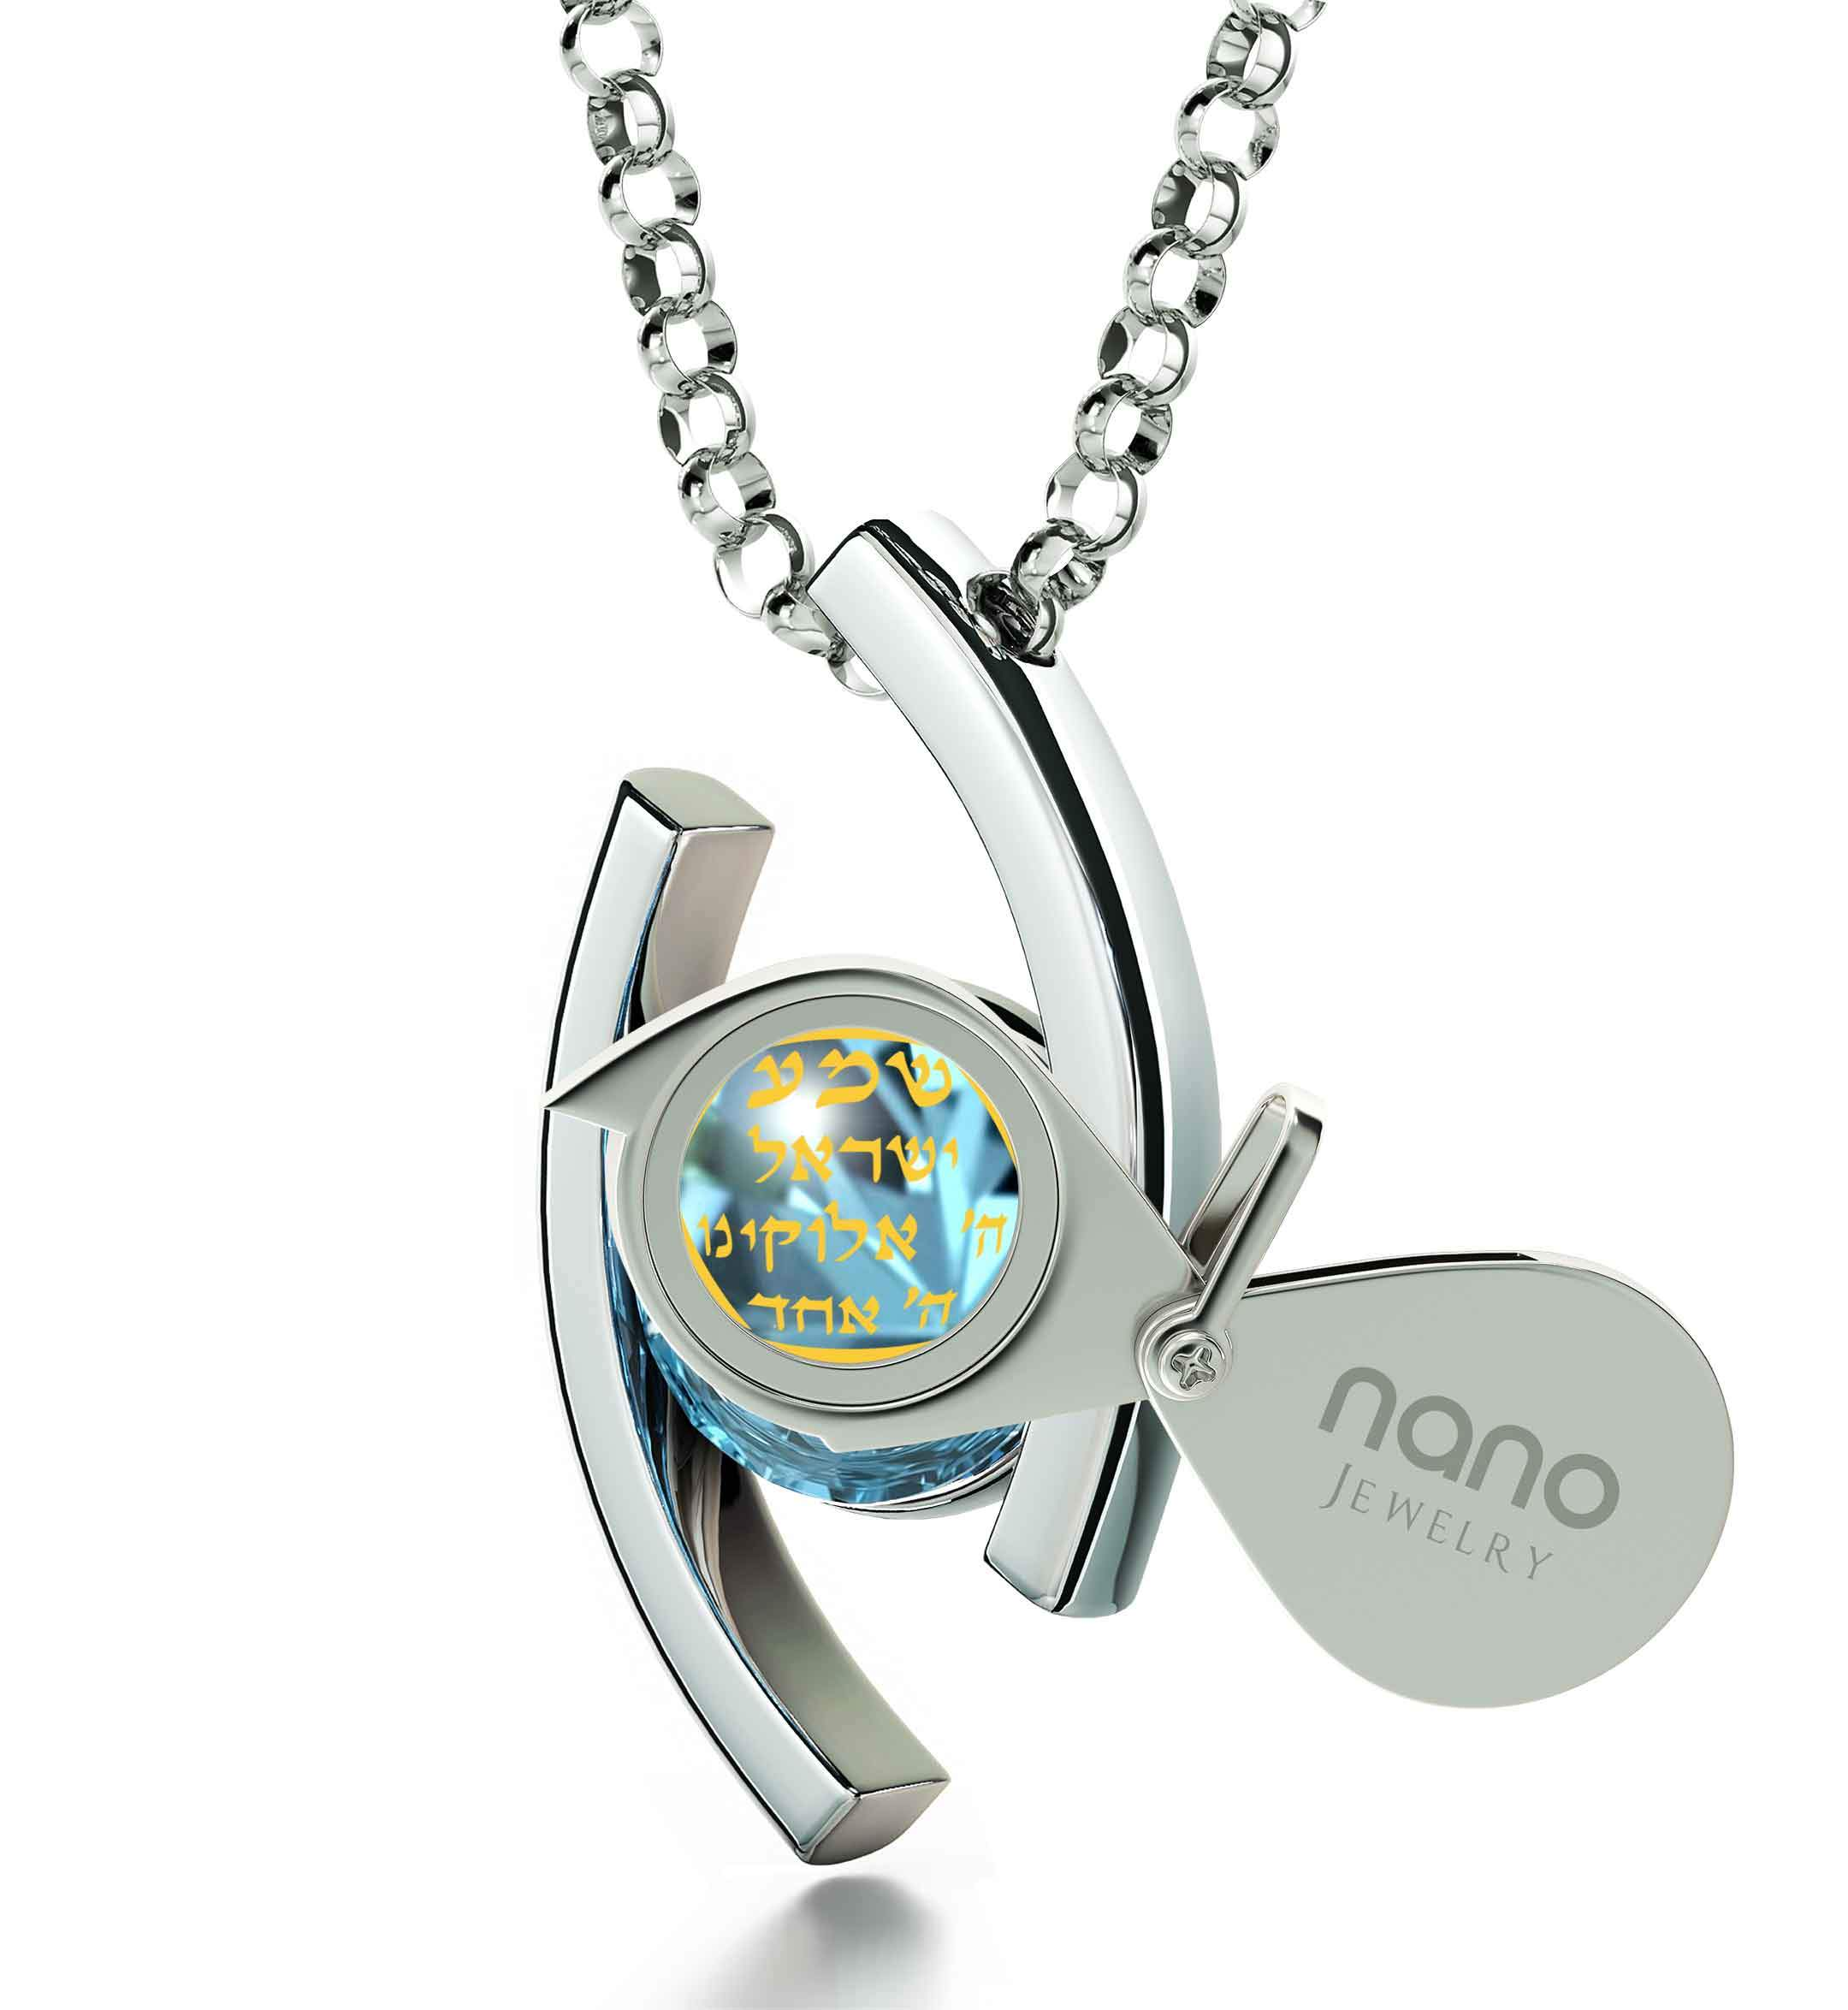 """Shema Yisrael"" Engraved in 24k, Jewish Necklace with Blue Diamond Stone, Israeli Jewelry Designer, Nano Jewelry"